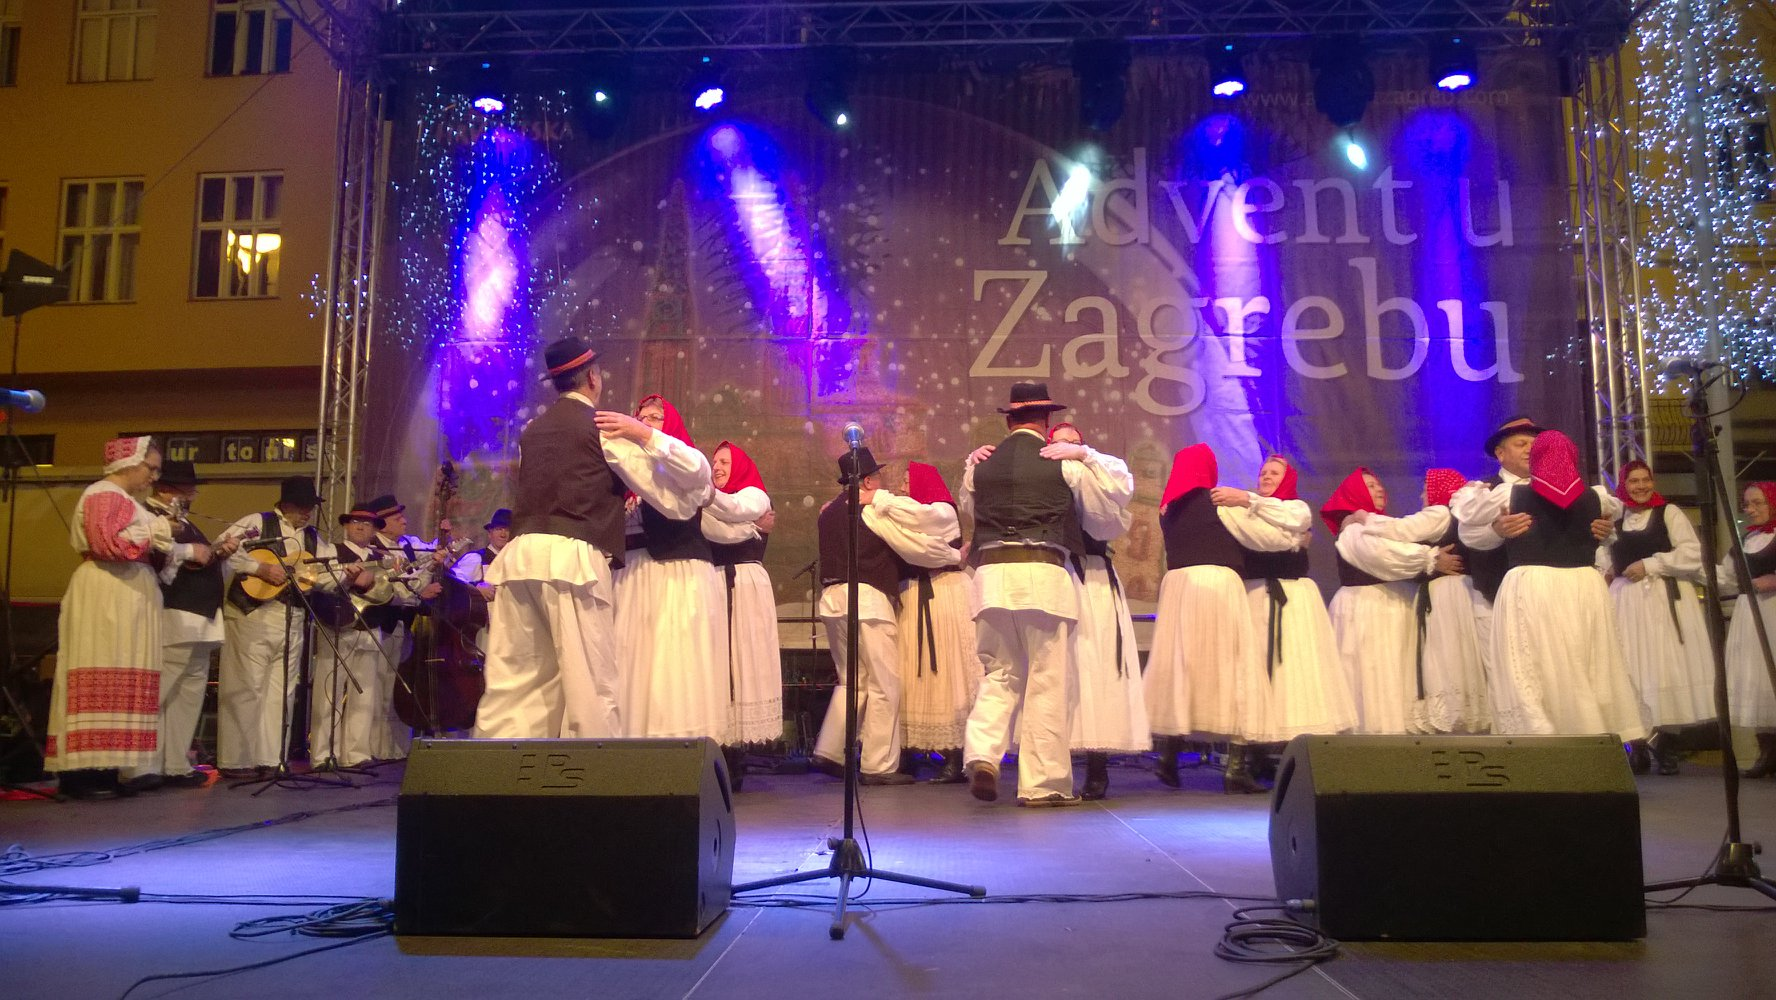 Advent u Zagrebu 10 Renato Pačelat 2018